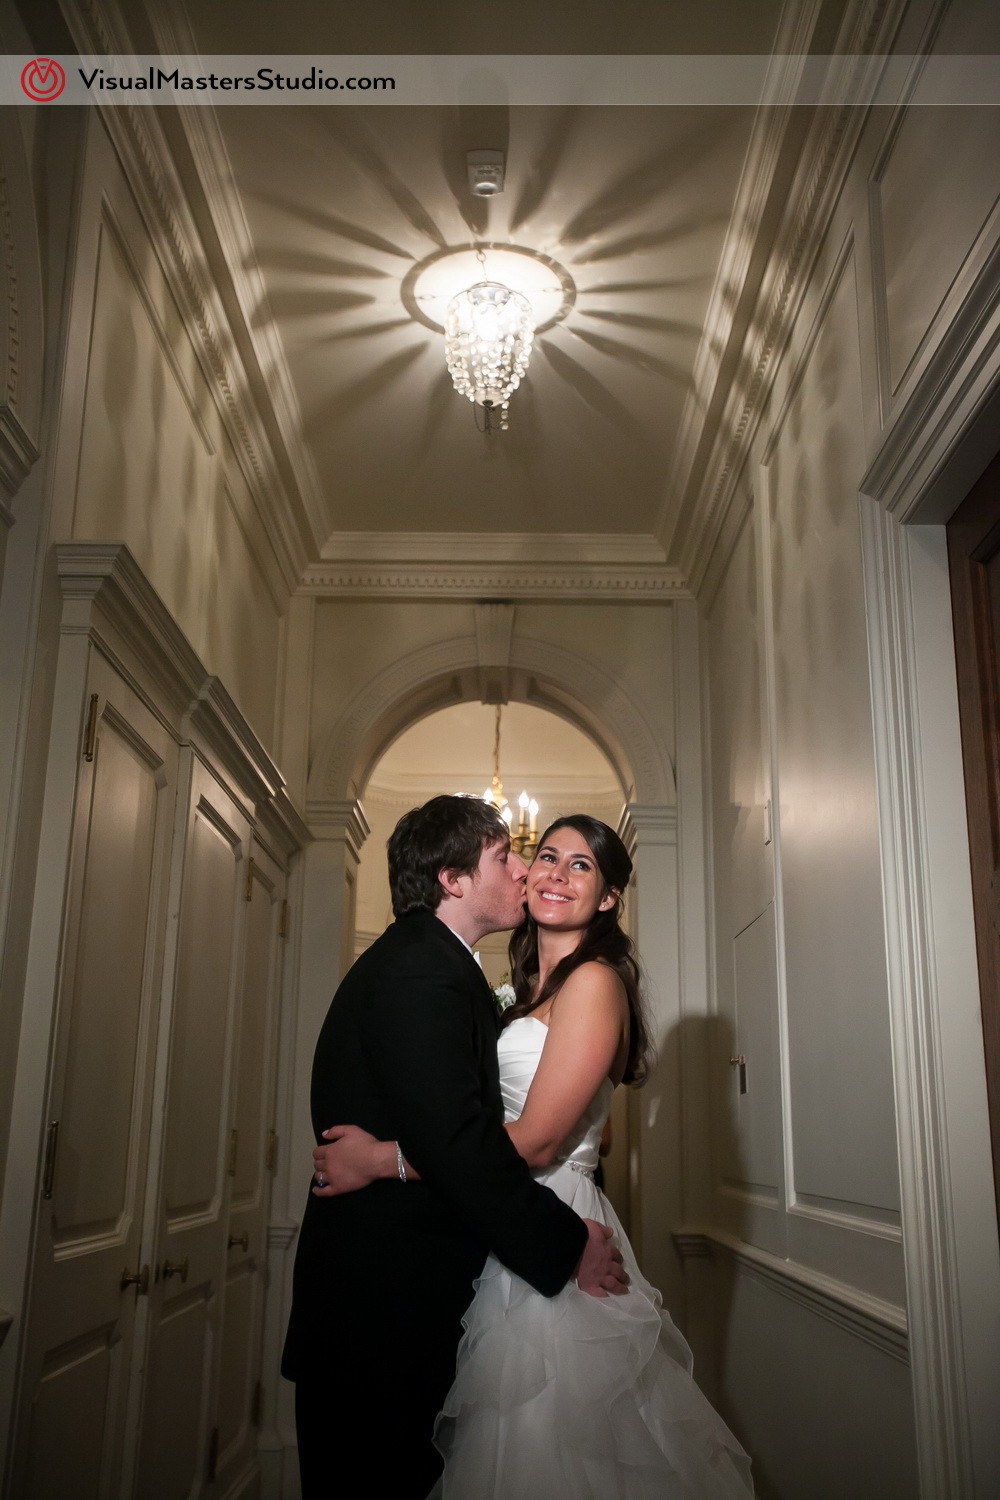 In the hallway at The Castle at Skylands Manor by Visual Masters